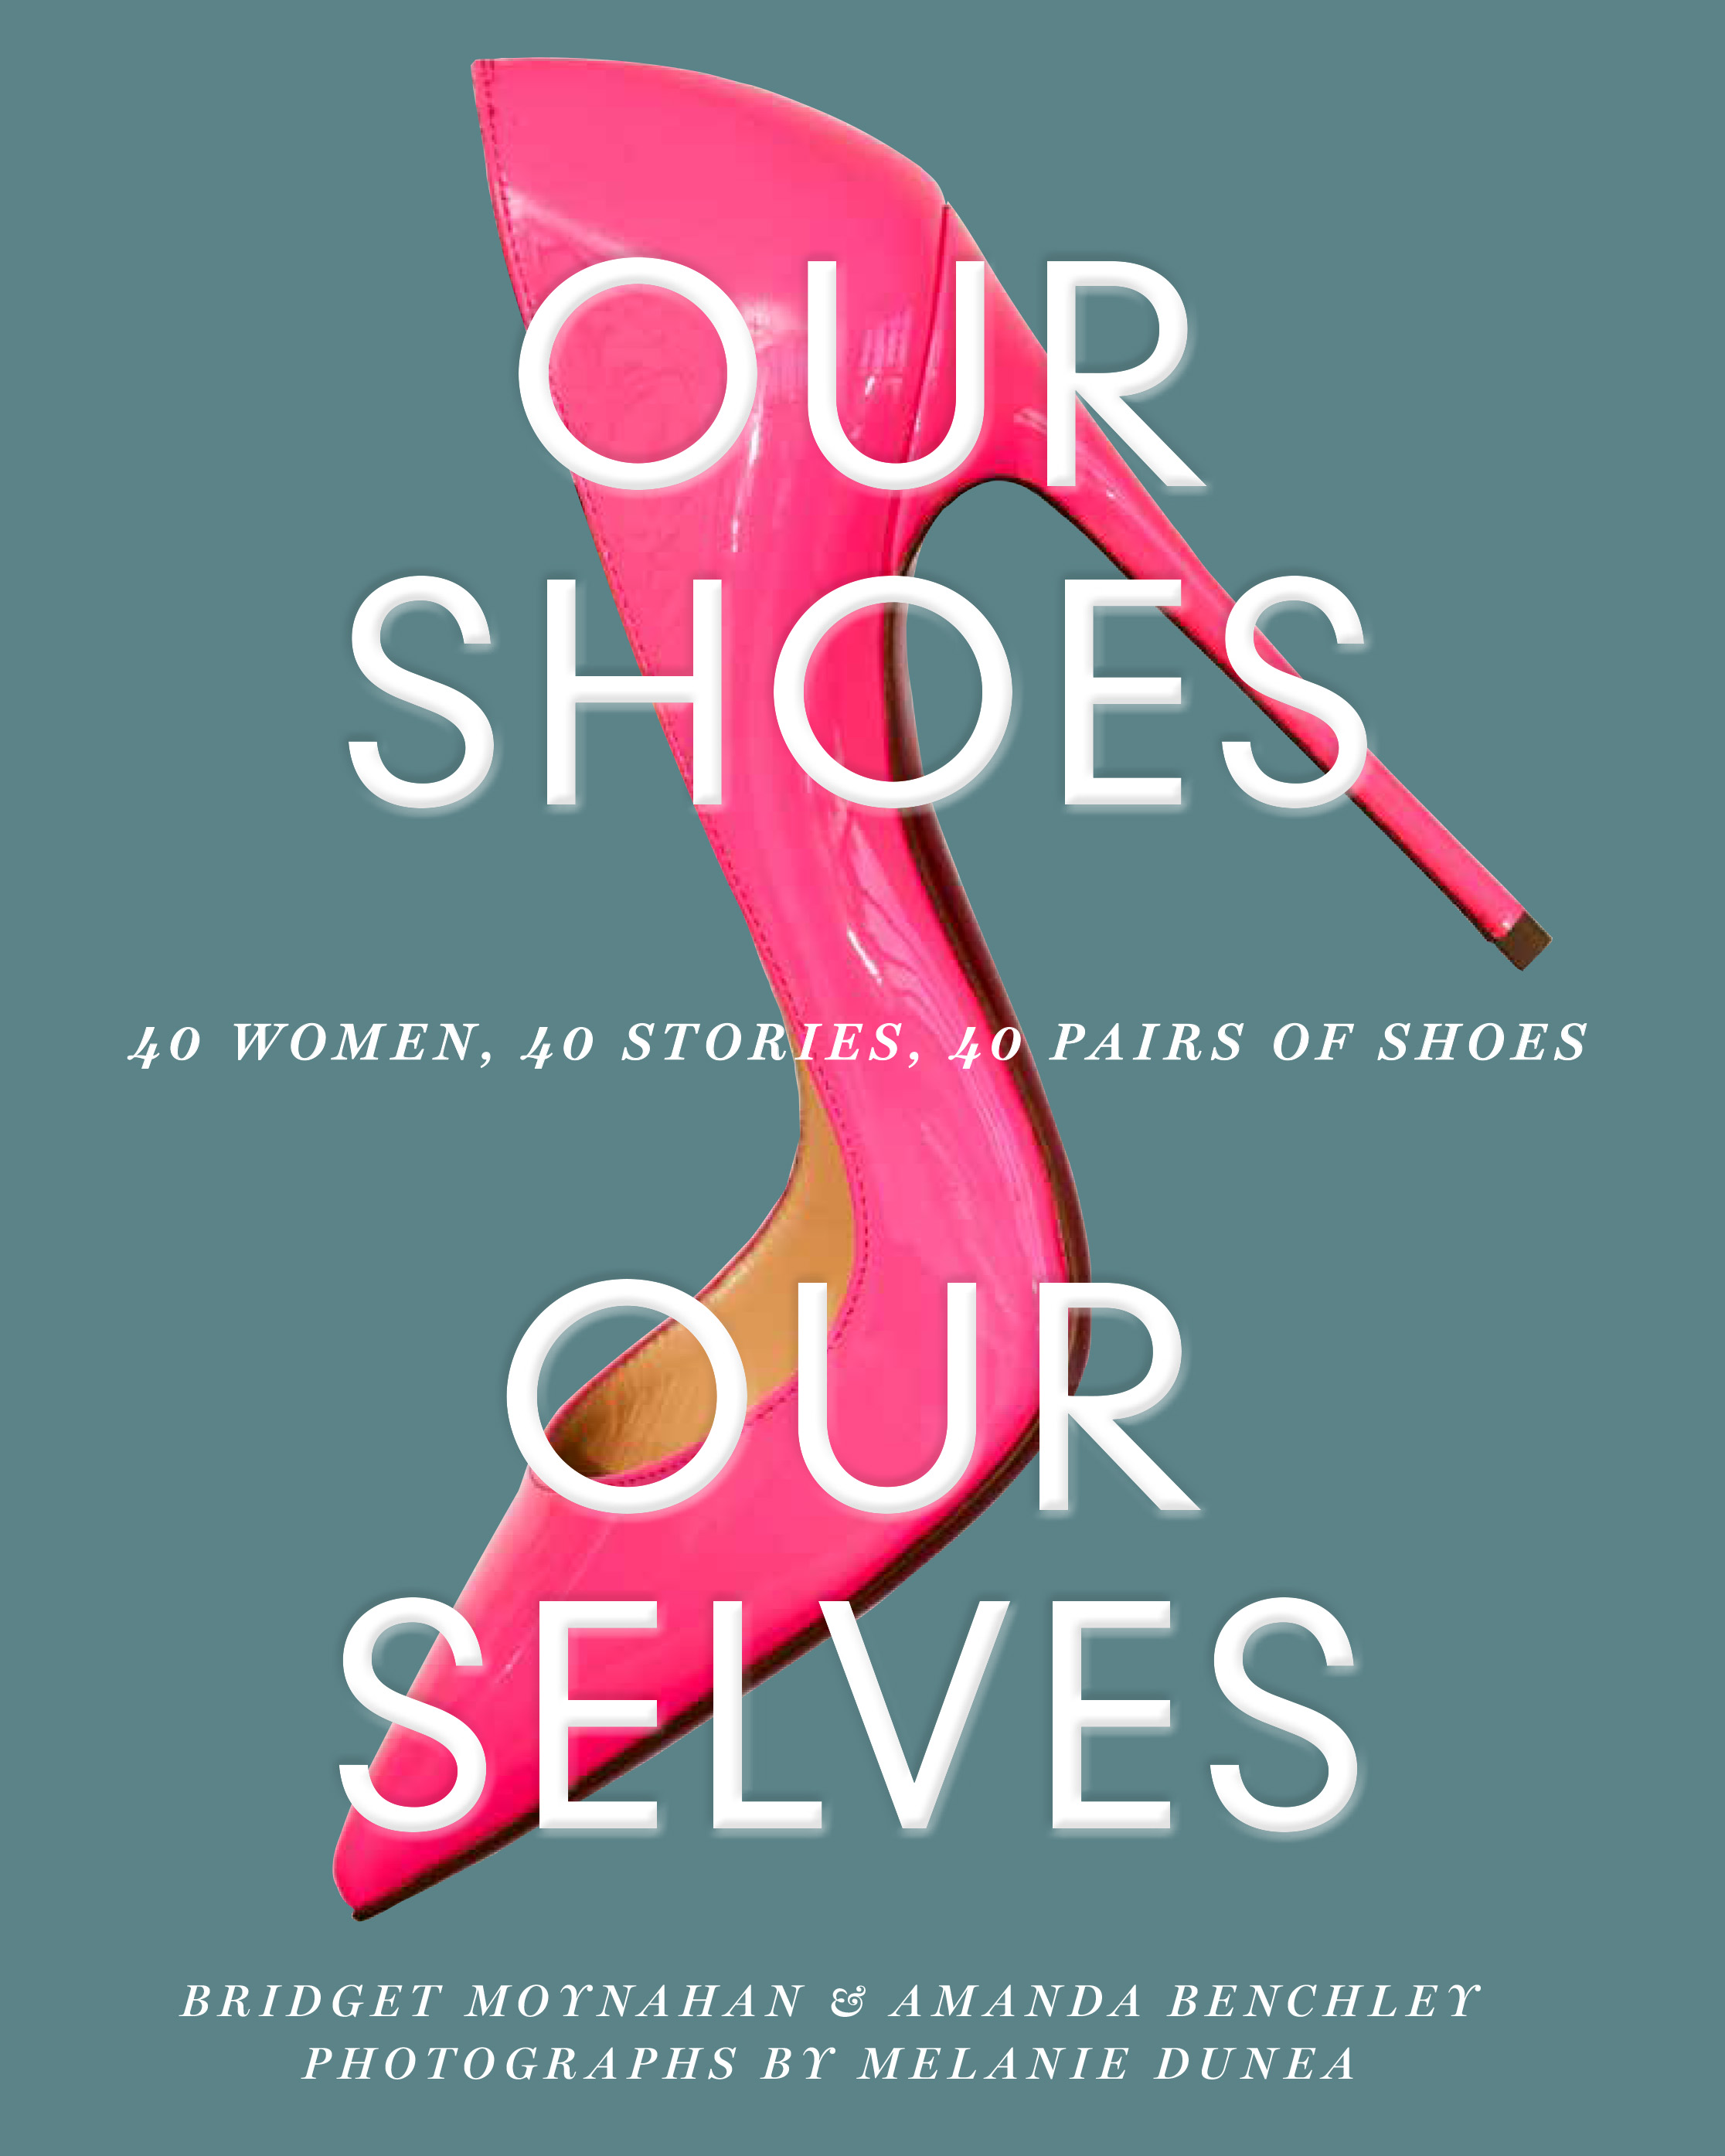 bc74ff9372056 NEW RELEASE: Our Shoes, Our Selves: 40 Women, 40 Stories, 40 Pairs of Shoes  by Bridget Moynahan and Amanda Benchley